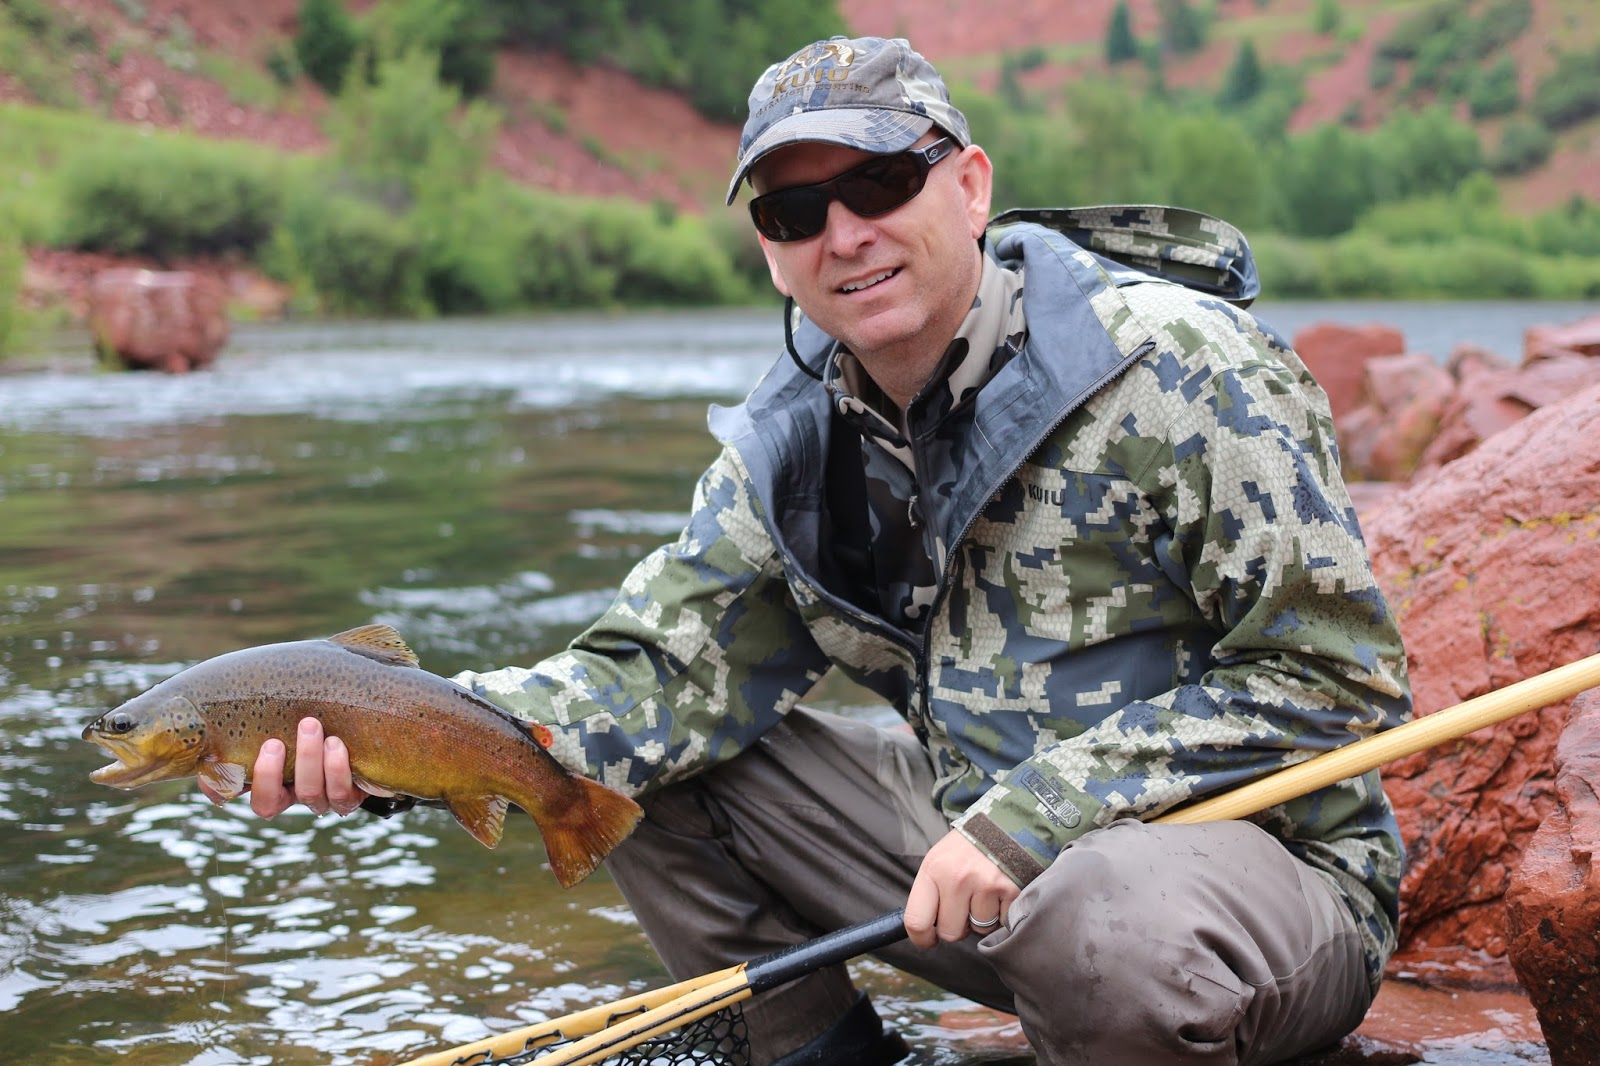 Ep 2: Summer Fly Fishing in Colorado, with Jay Scott